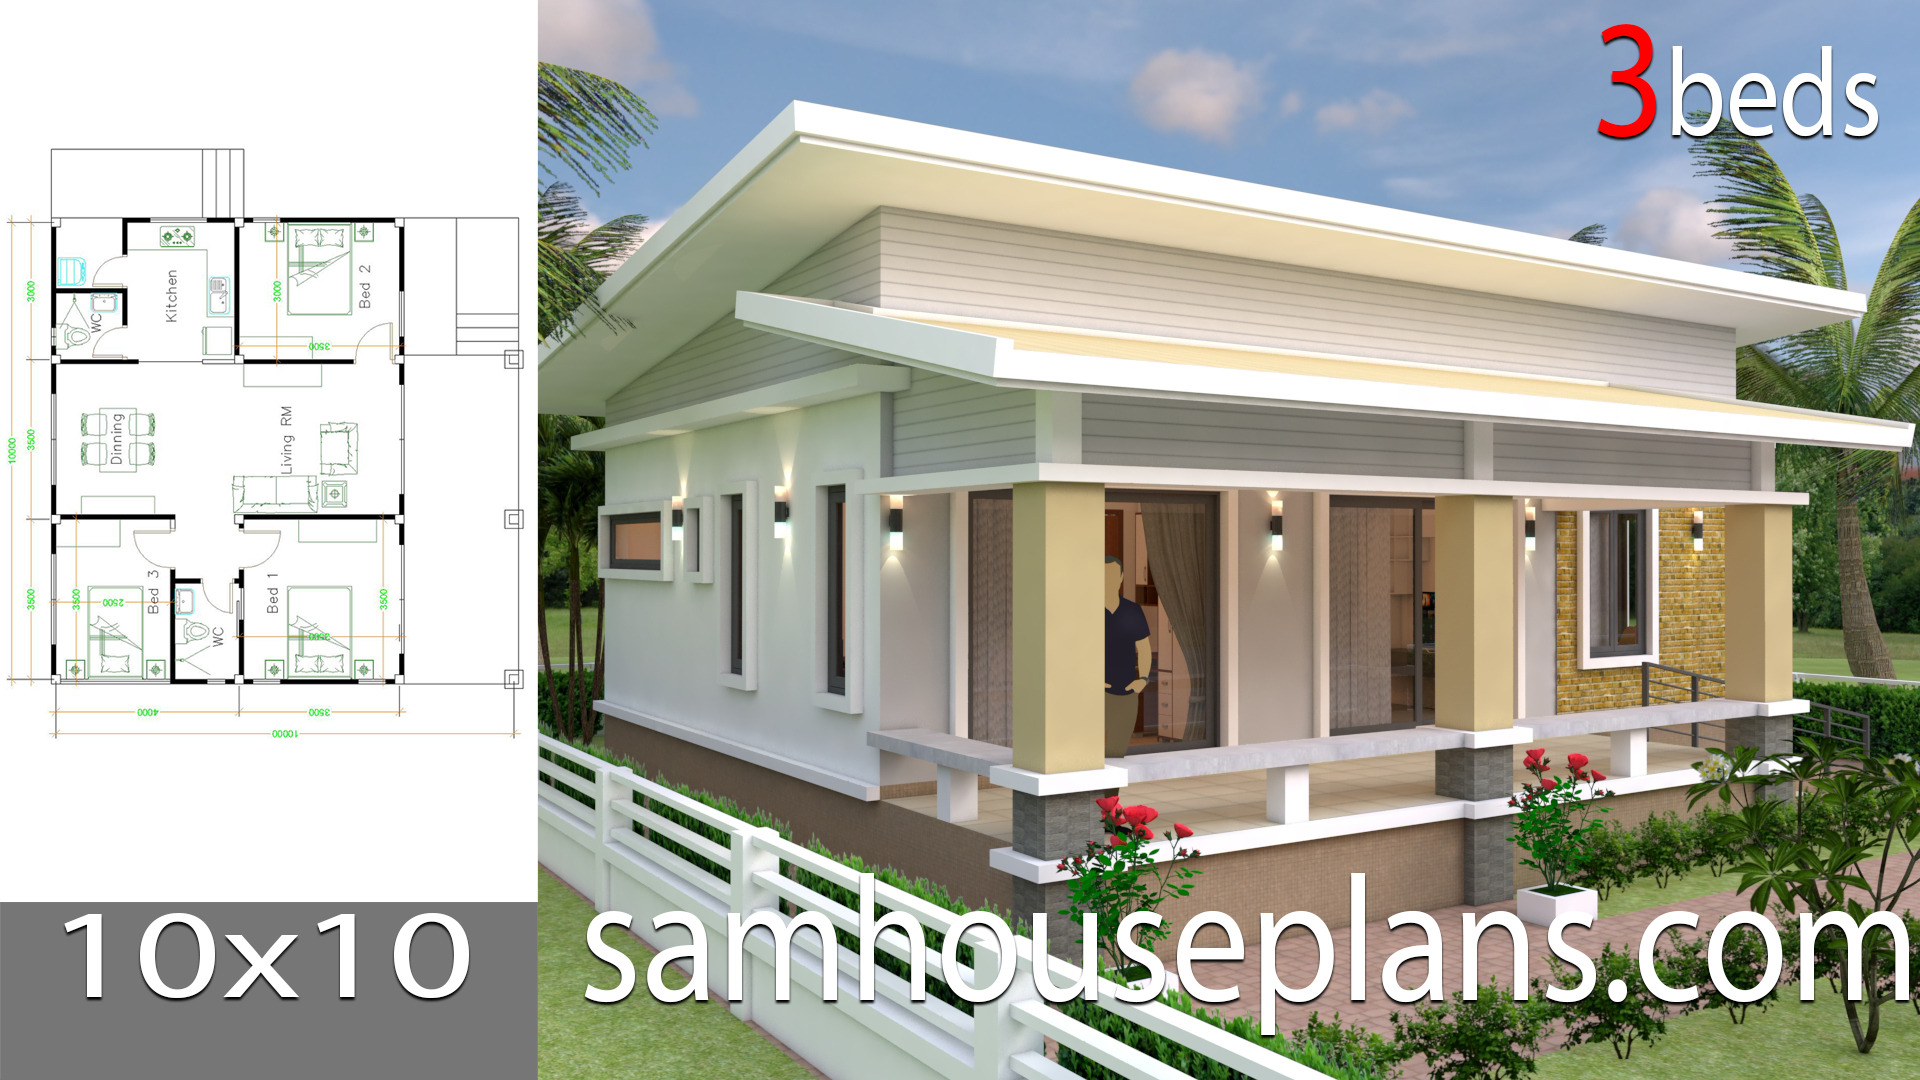 House Plans 10x10 With 3 Bedrooms Full Interior Samhouseplans